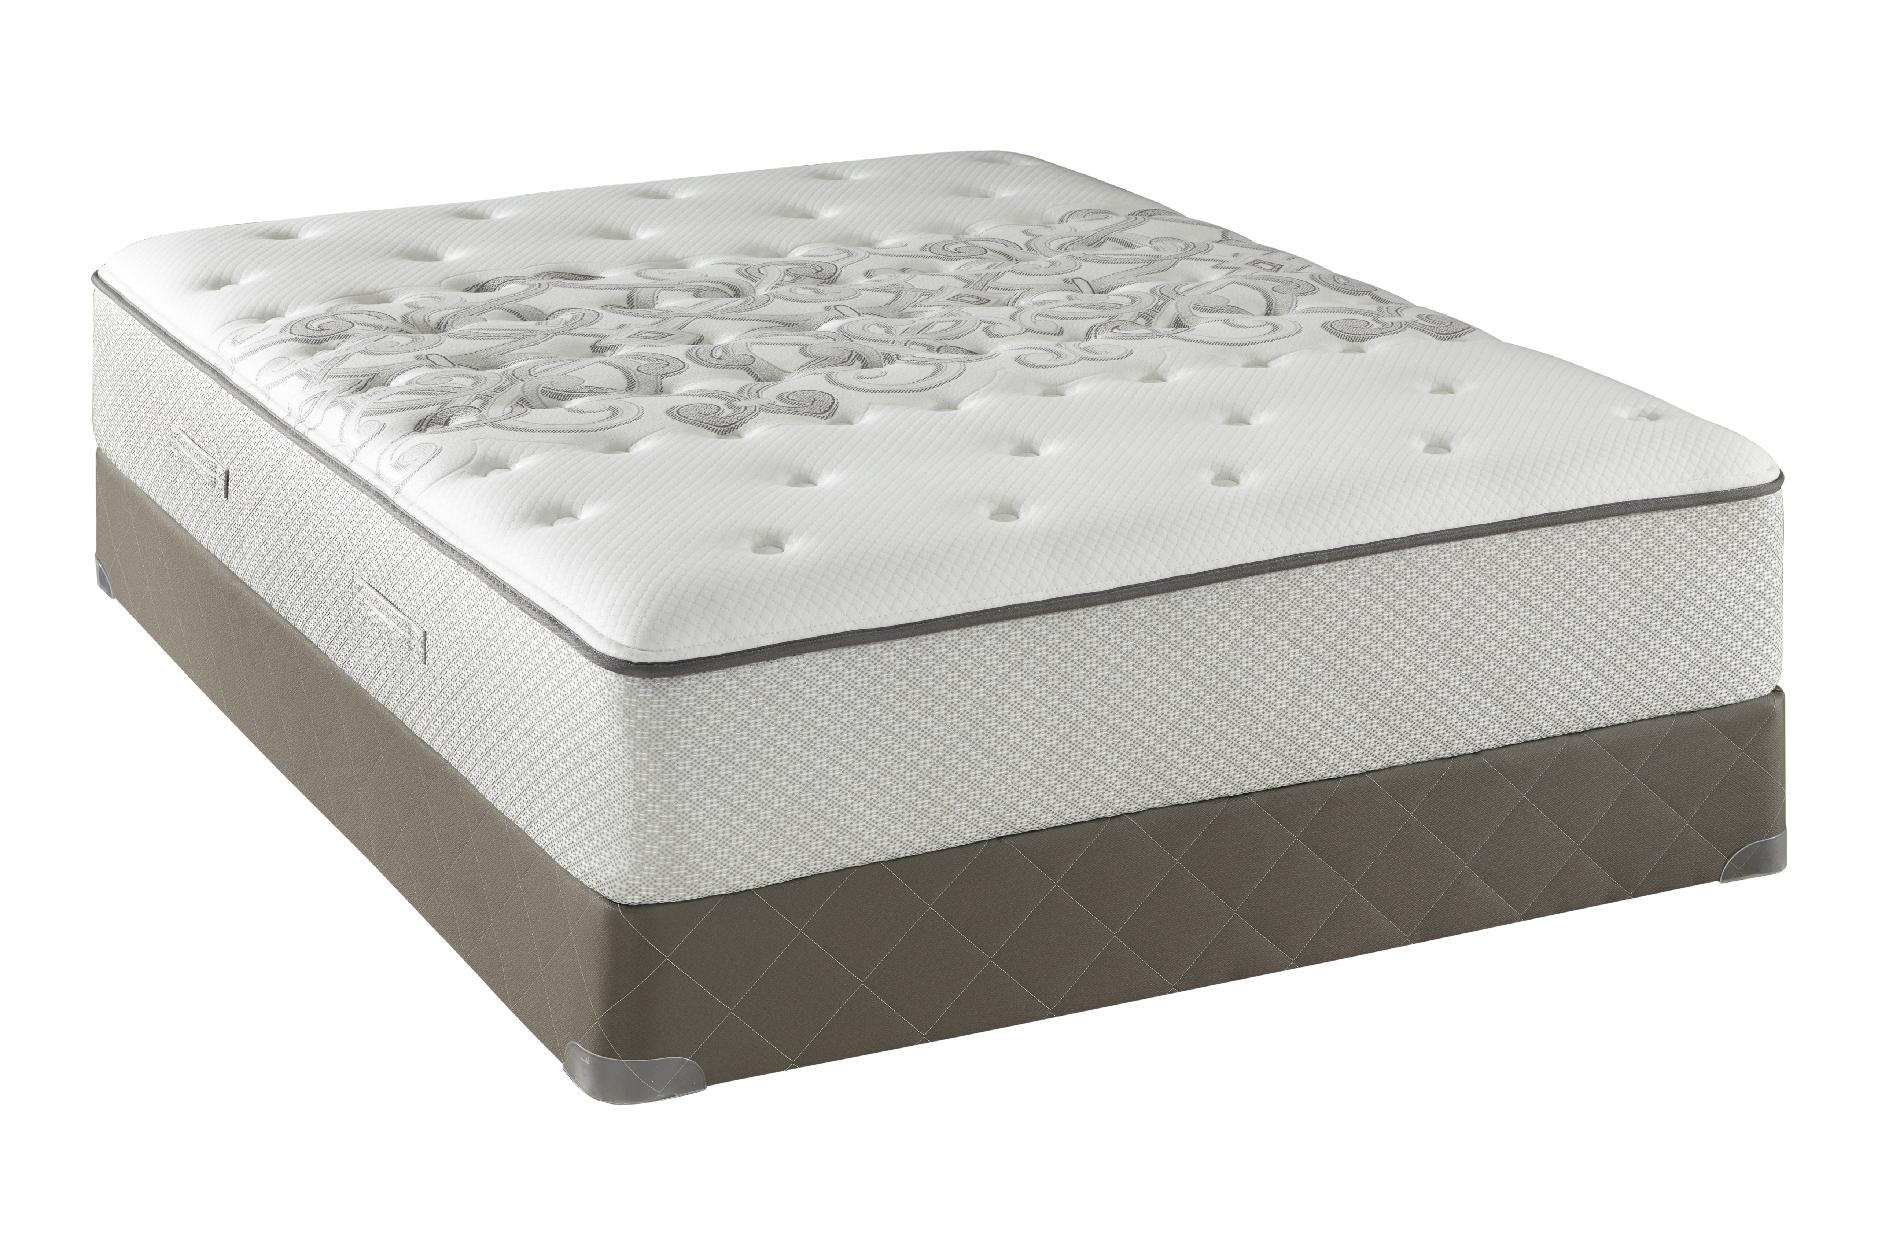 Sealy Posturepedic Fergus Falls Ti2 II, Firm, Full Mattress Only